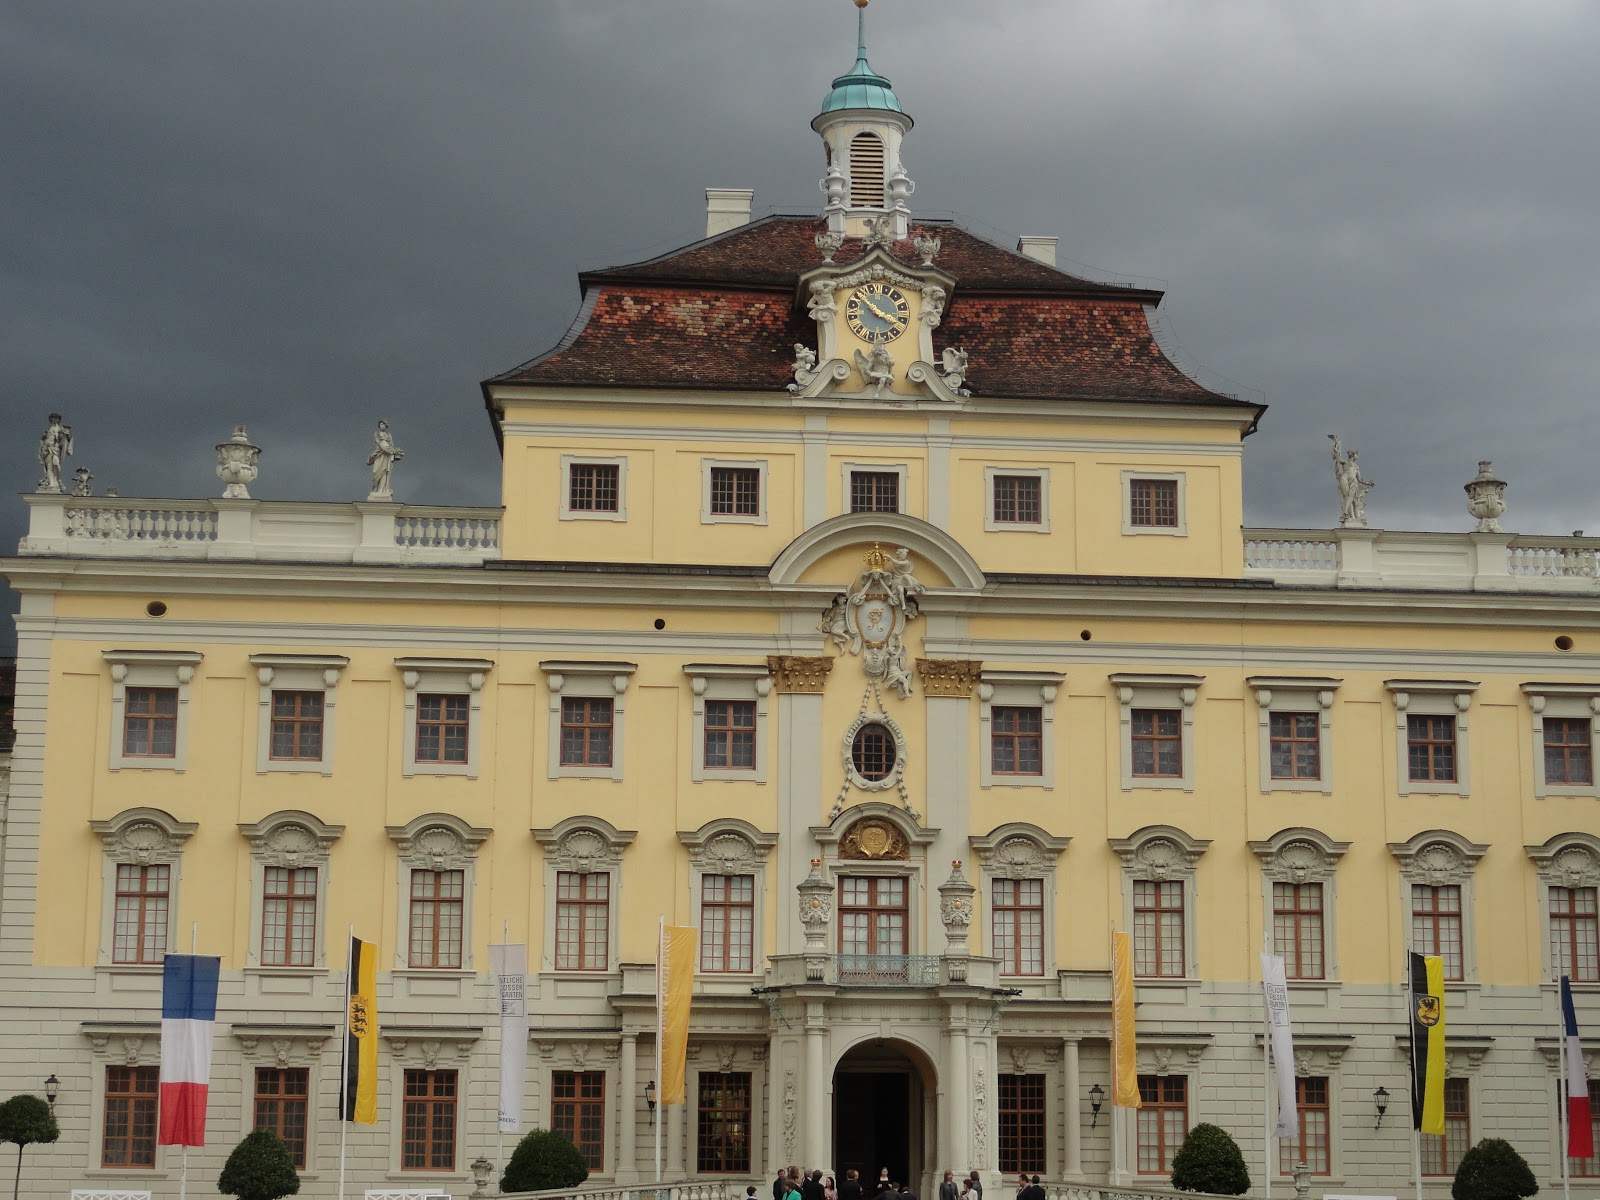 records in a journal ludwigsburg a beautiful piece of. Black Bedroom Furniture Sets. Home Design Ideas